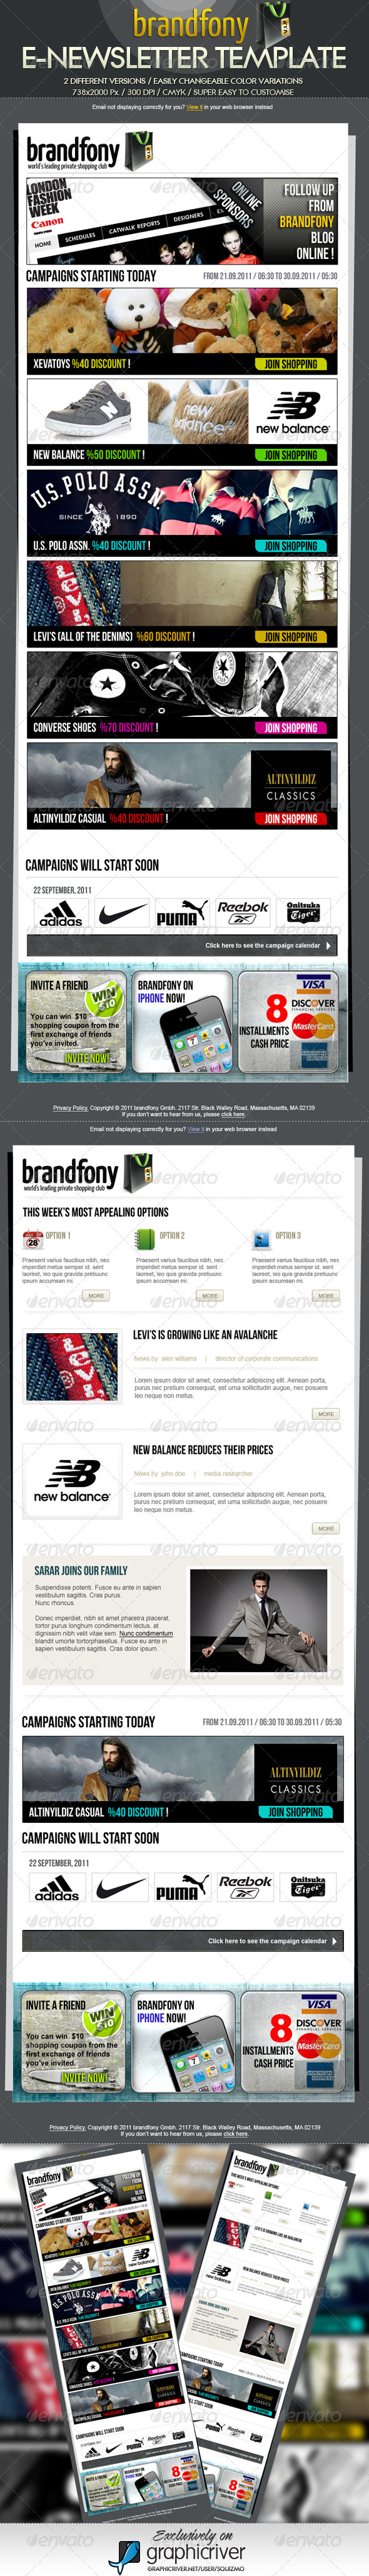 Brandfony E-Newsletter Template - E-newsletters Web Elements